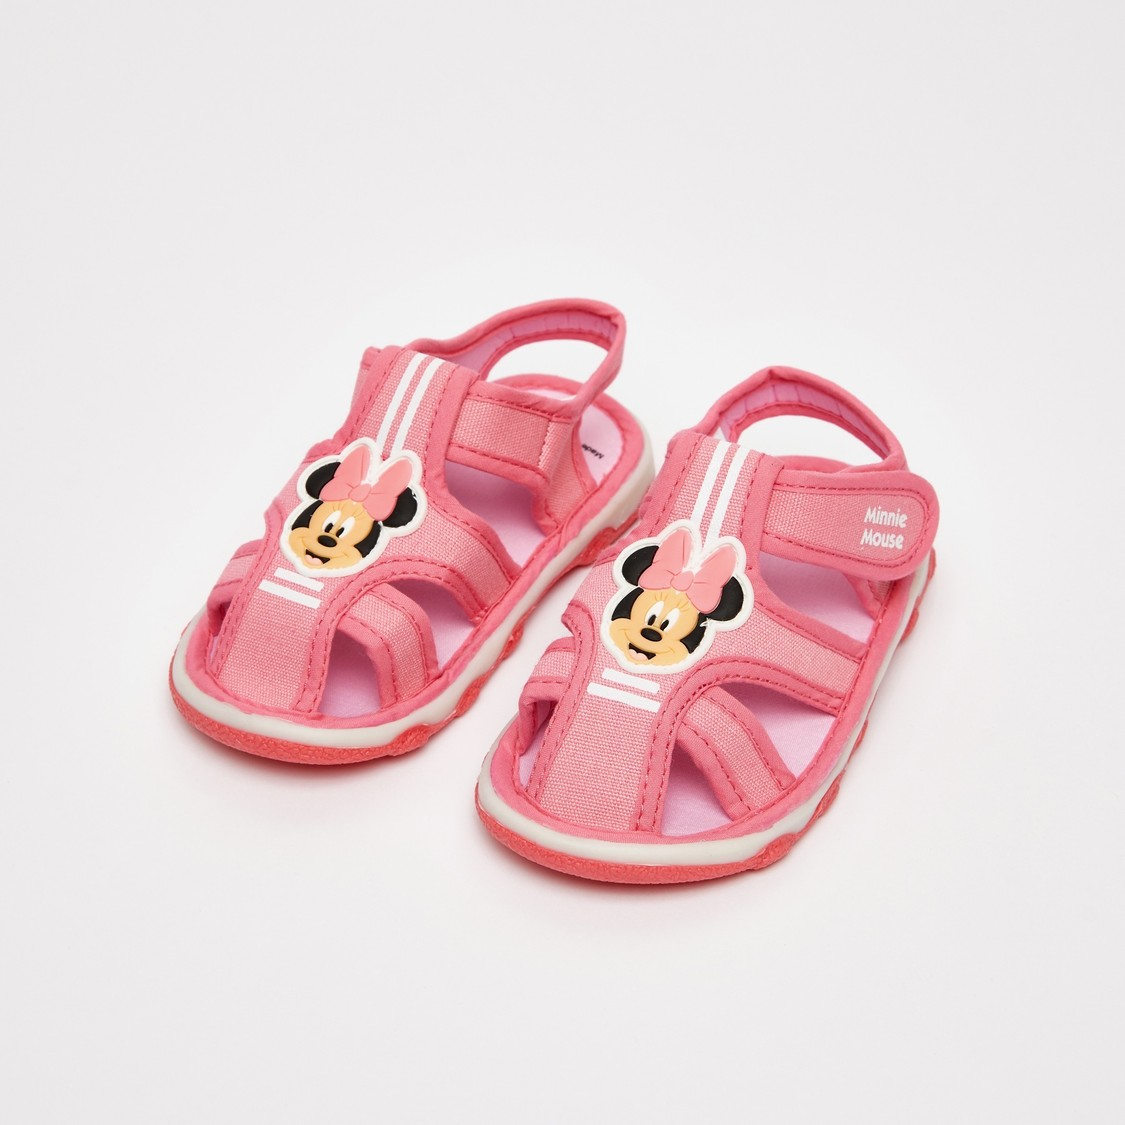 Minnie Mouse Print Sandals with Hook and Loop Closure